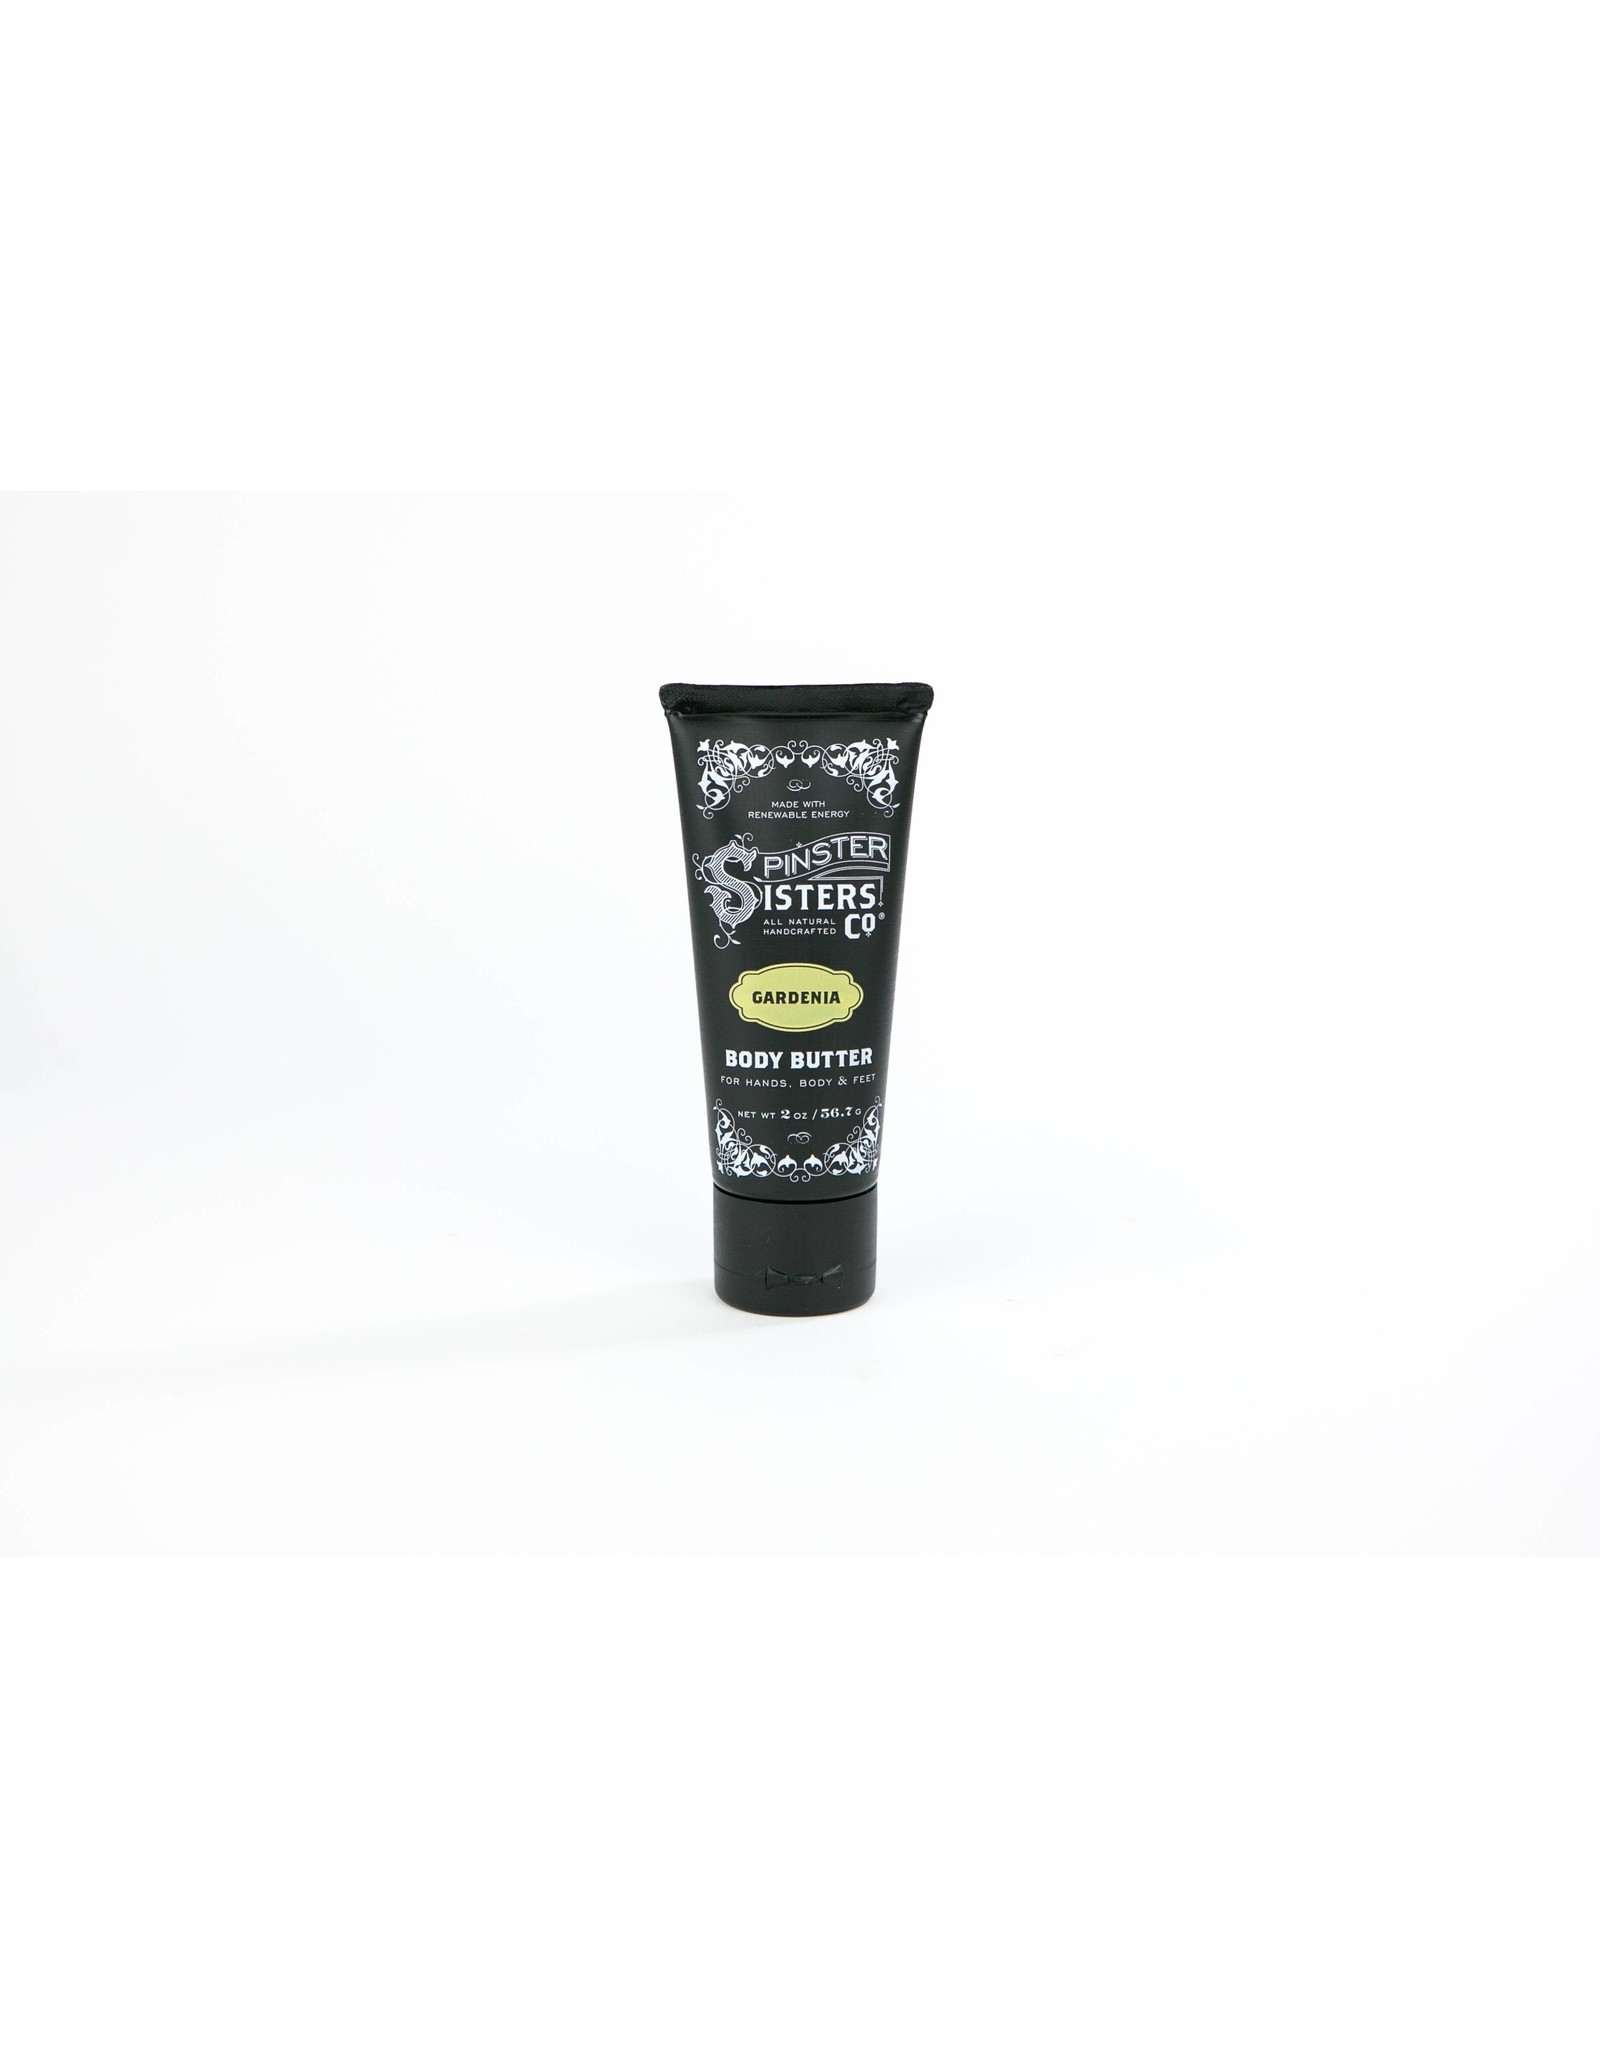 Spinster Sisters Co. Body Butter - Gardenia - 2 oz.